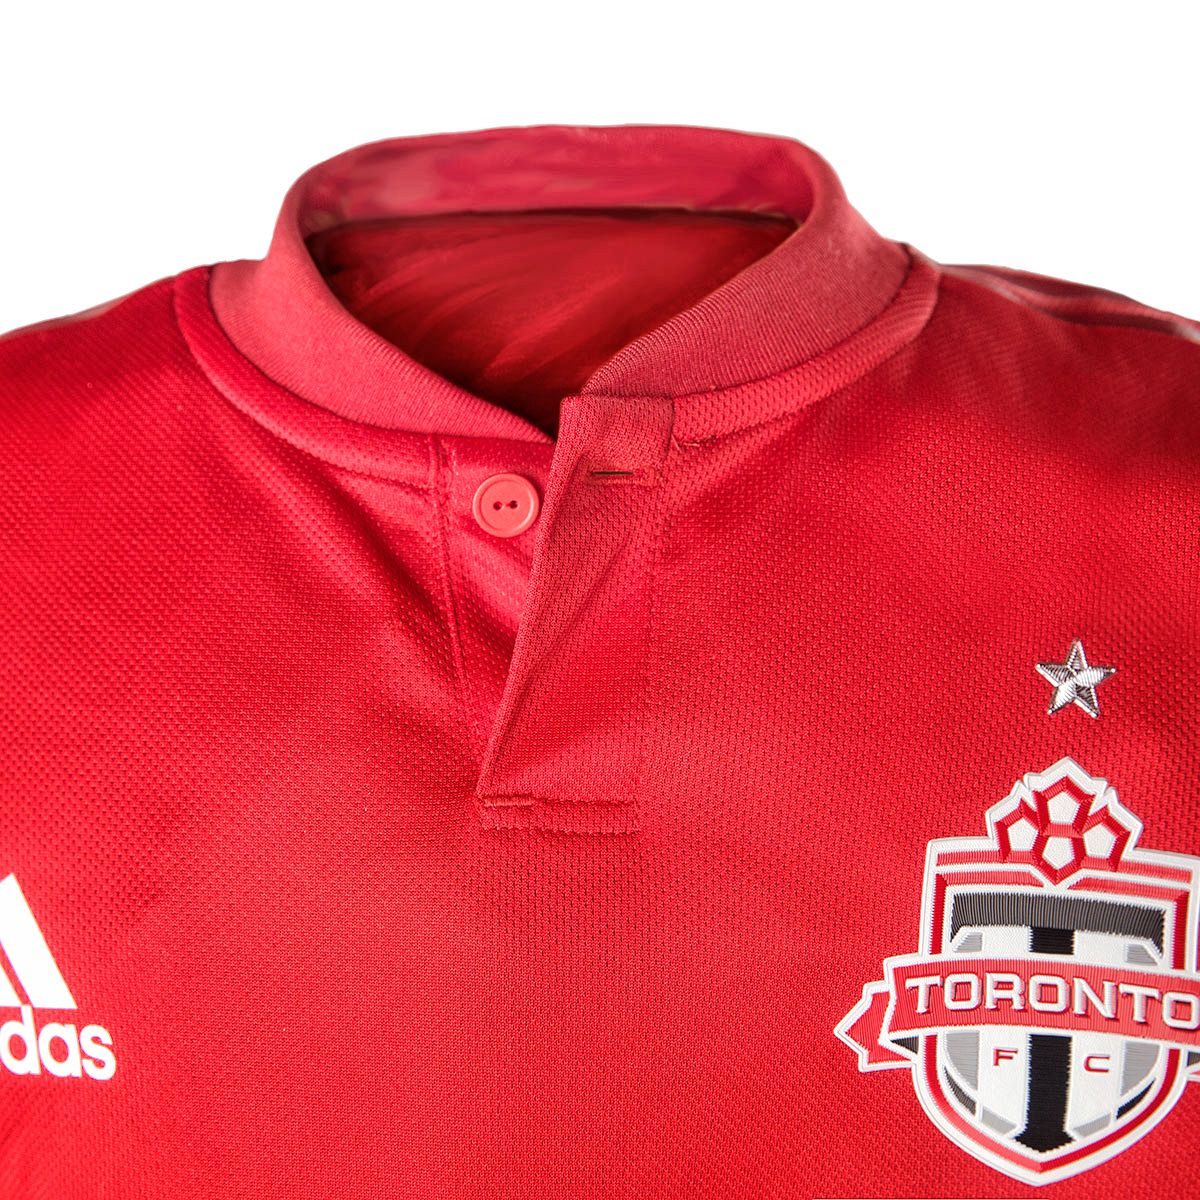 check out 6ae52 507f2 2019 Toronto FC Kit | Toronto FC